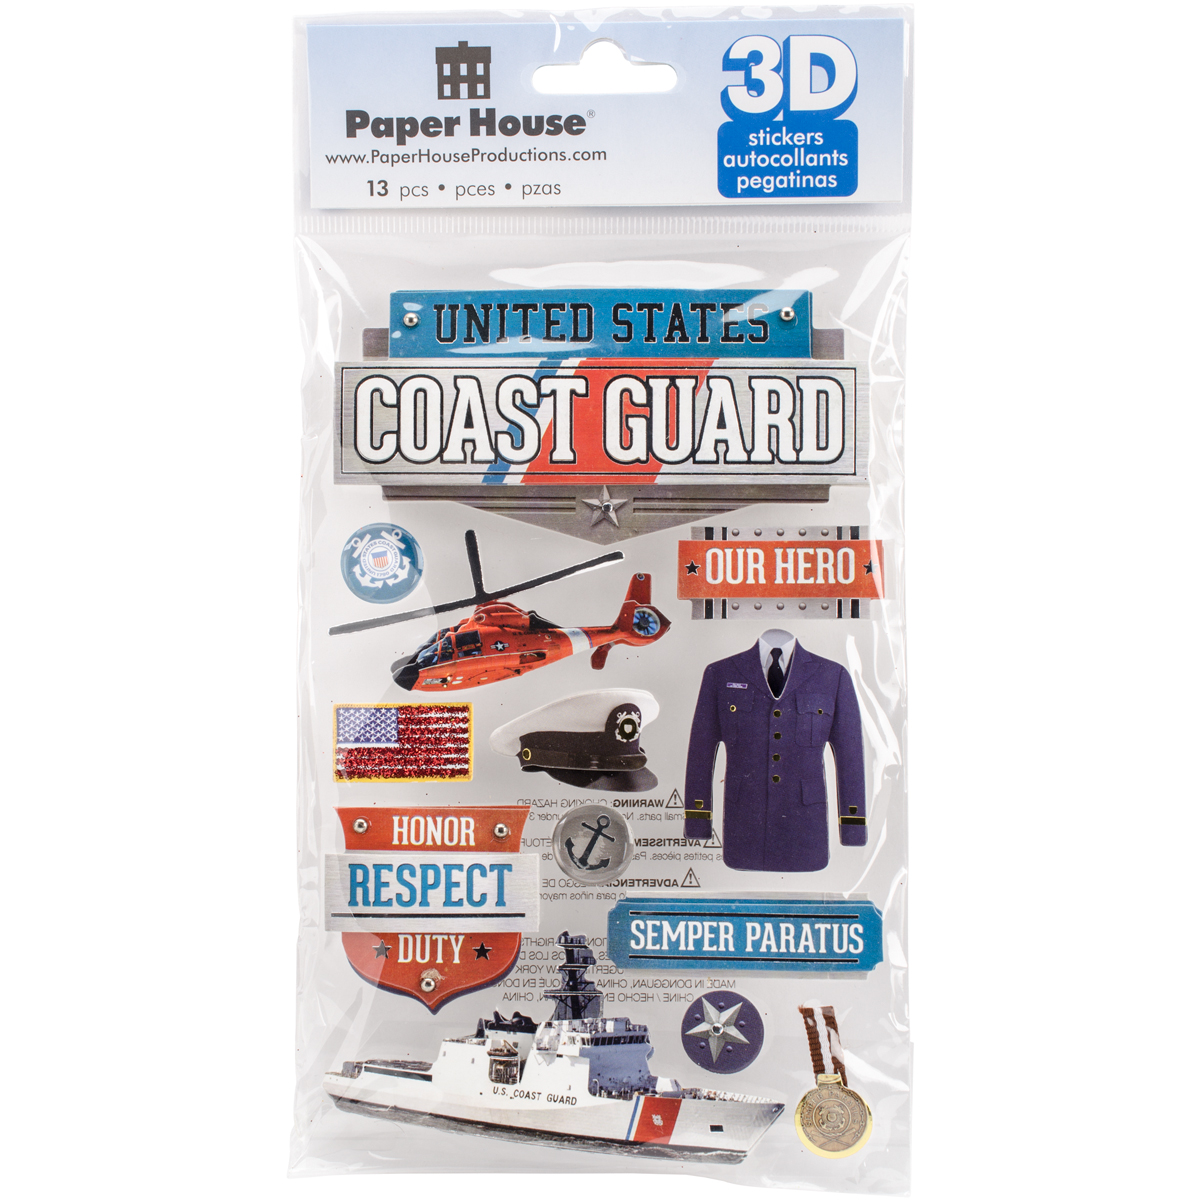 Paper House 3D Stickers 4.5X7.5 -Us Coast Guard